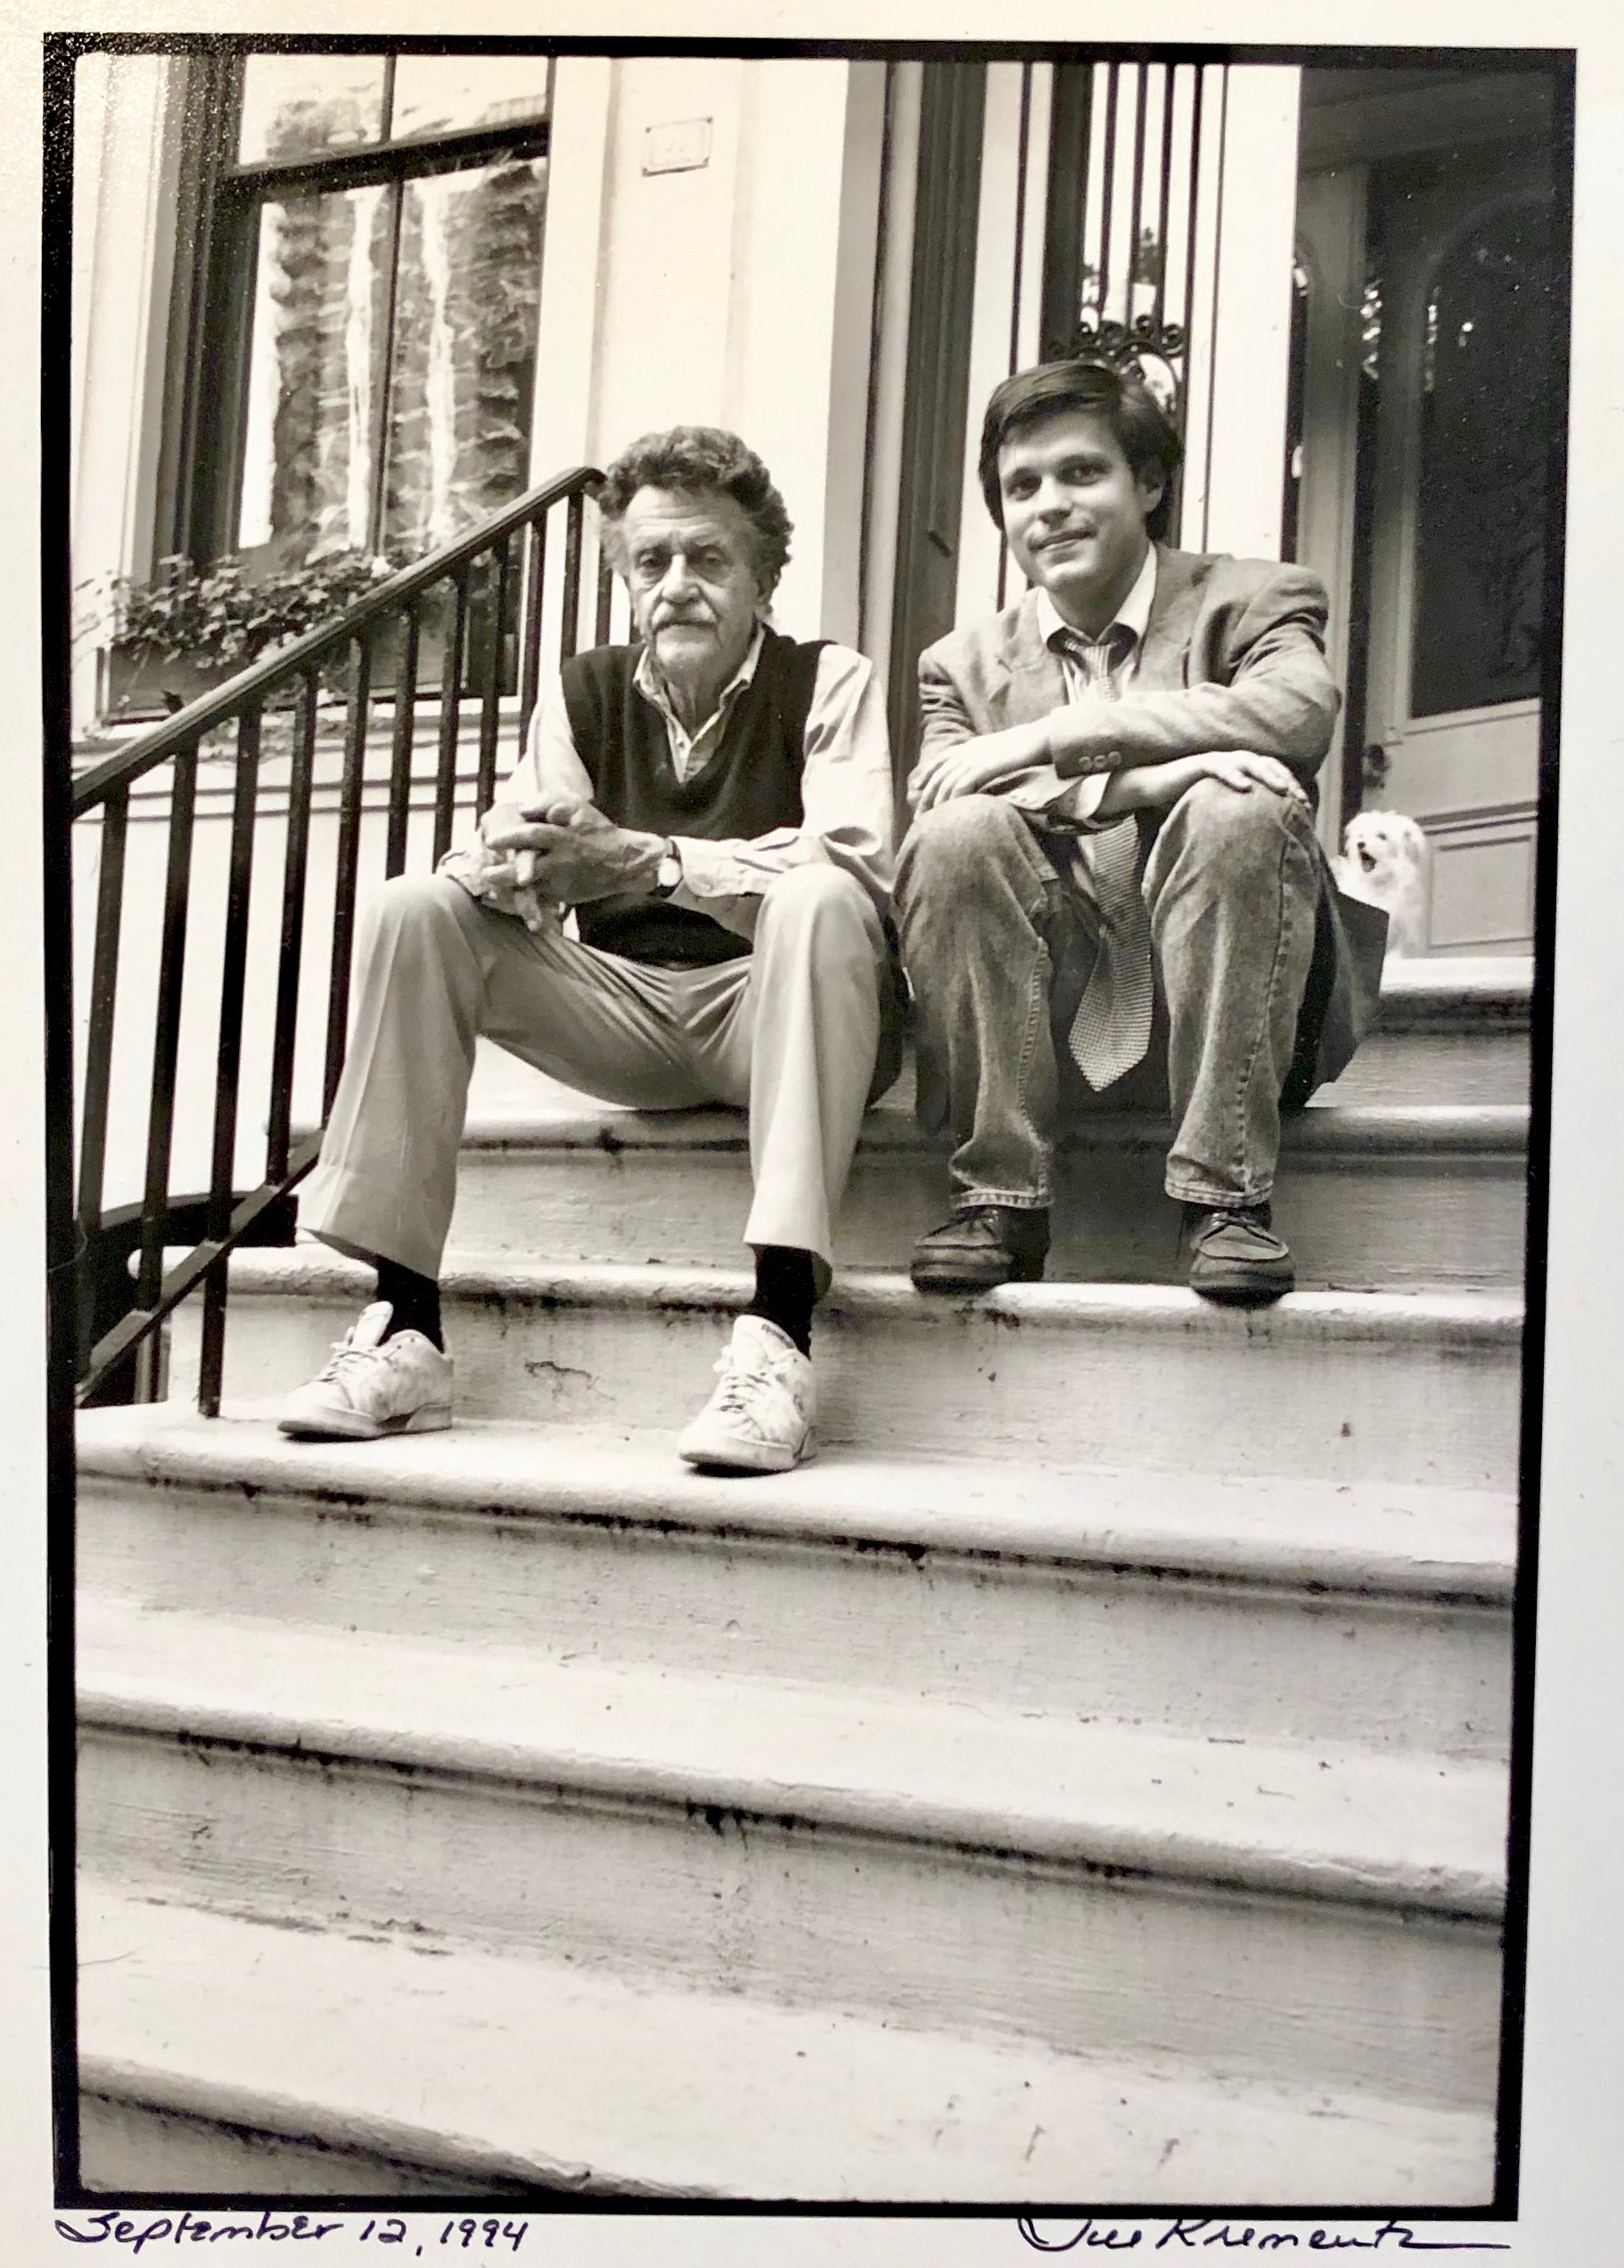 Douglas Brinkley and Kurt Vonnegut 1994